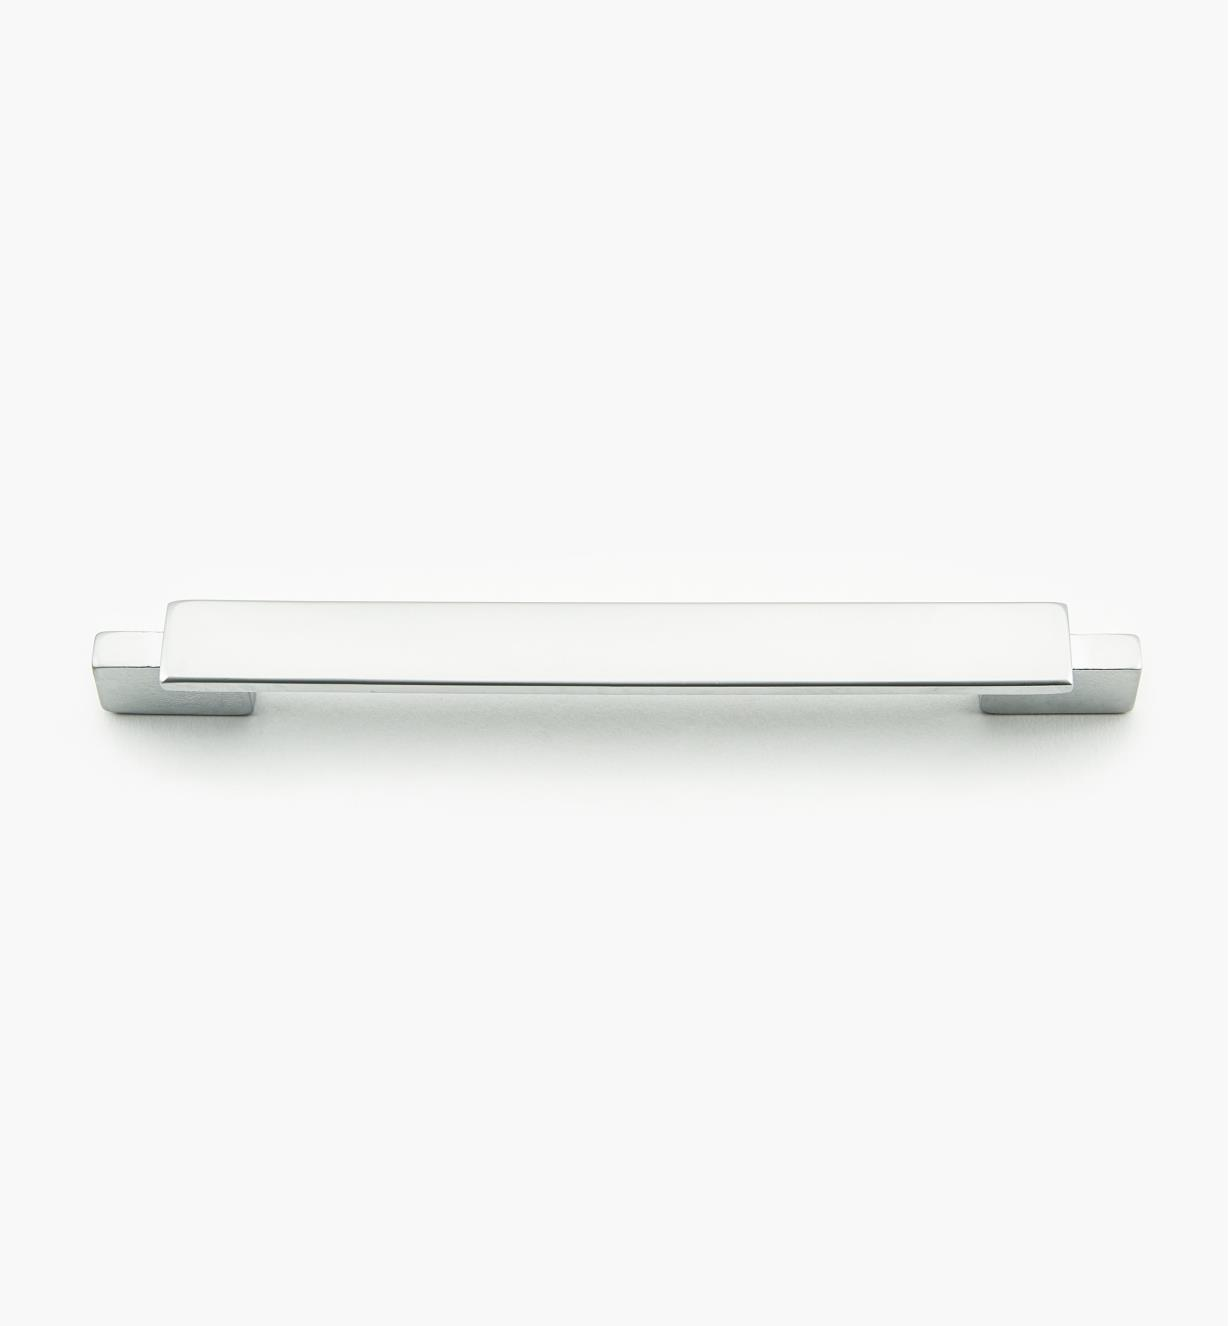 01G1845 - Bridge Hardware - 128mm x 166mm Matte Chrome Handle